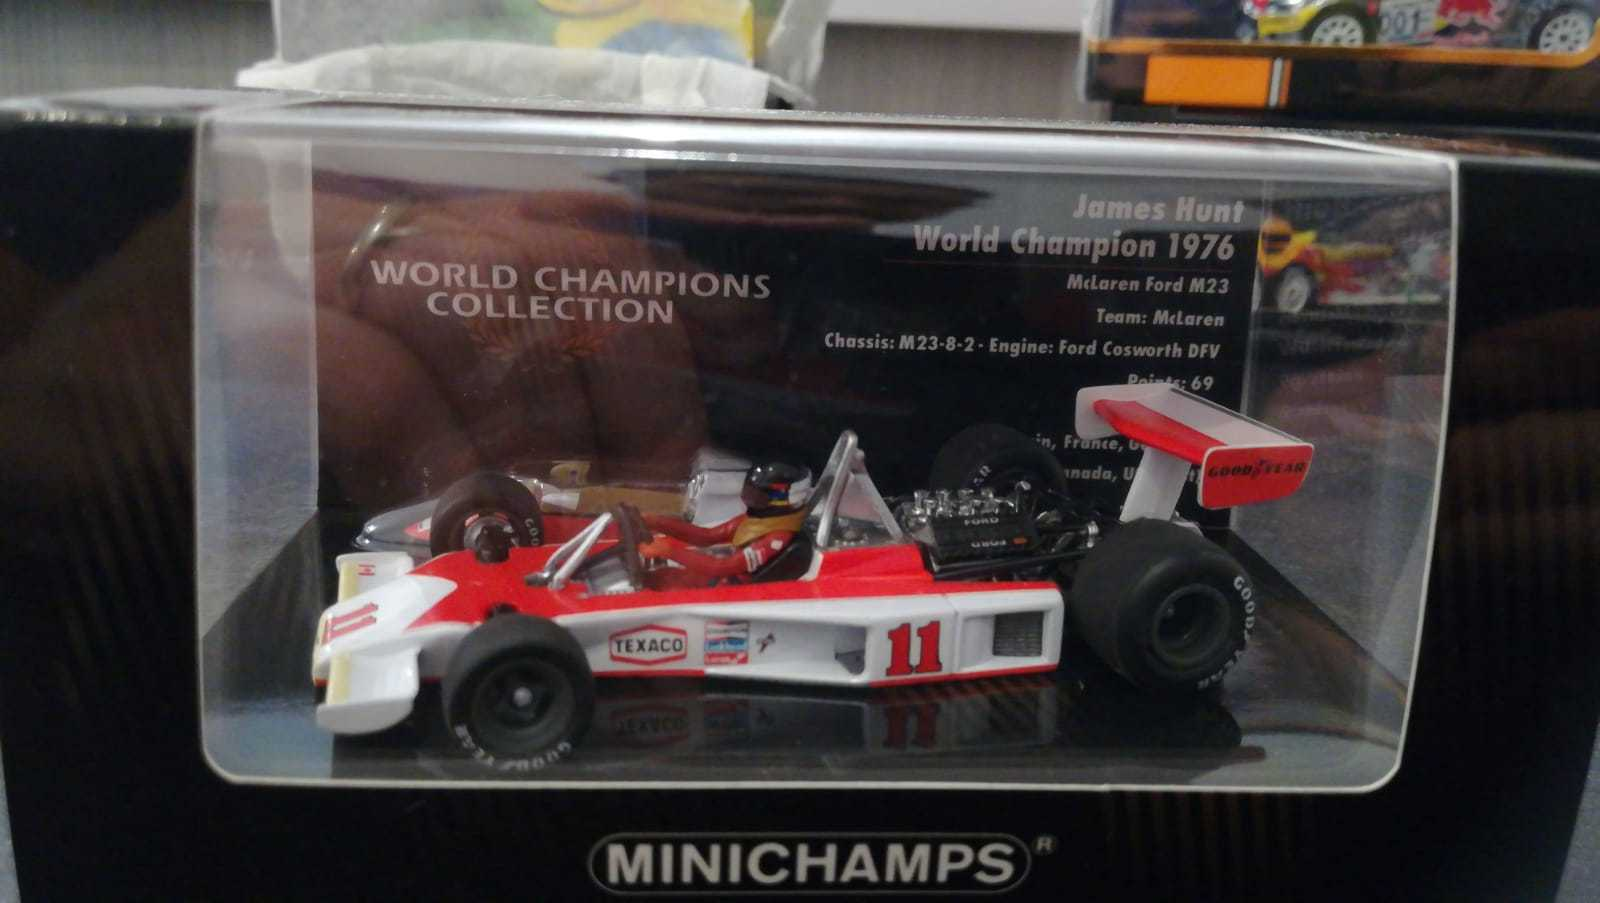 MINICHAMPS 436760011 F1 1/43 MCLAREN FORD M23 JAMES HUNT 1976 F1 WORLD CHAMPION